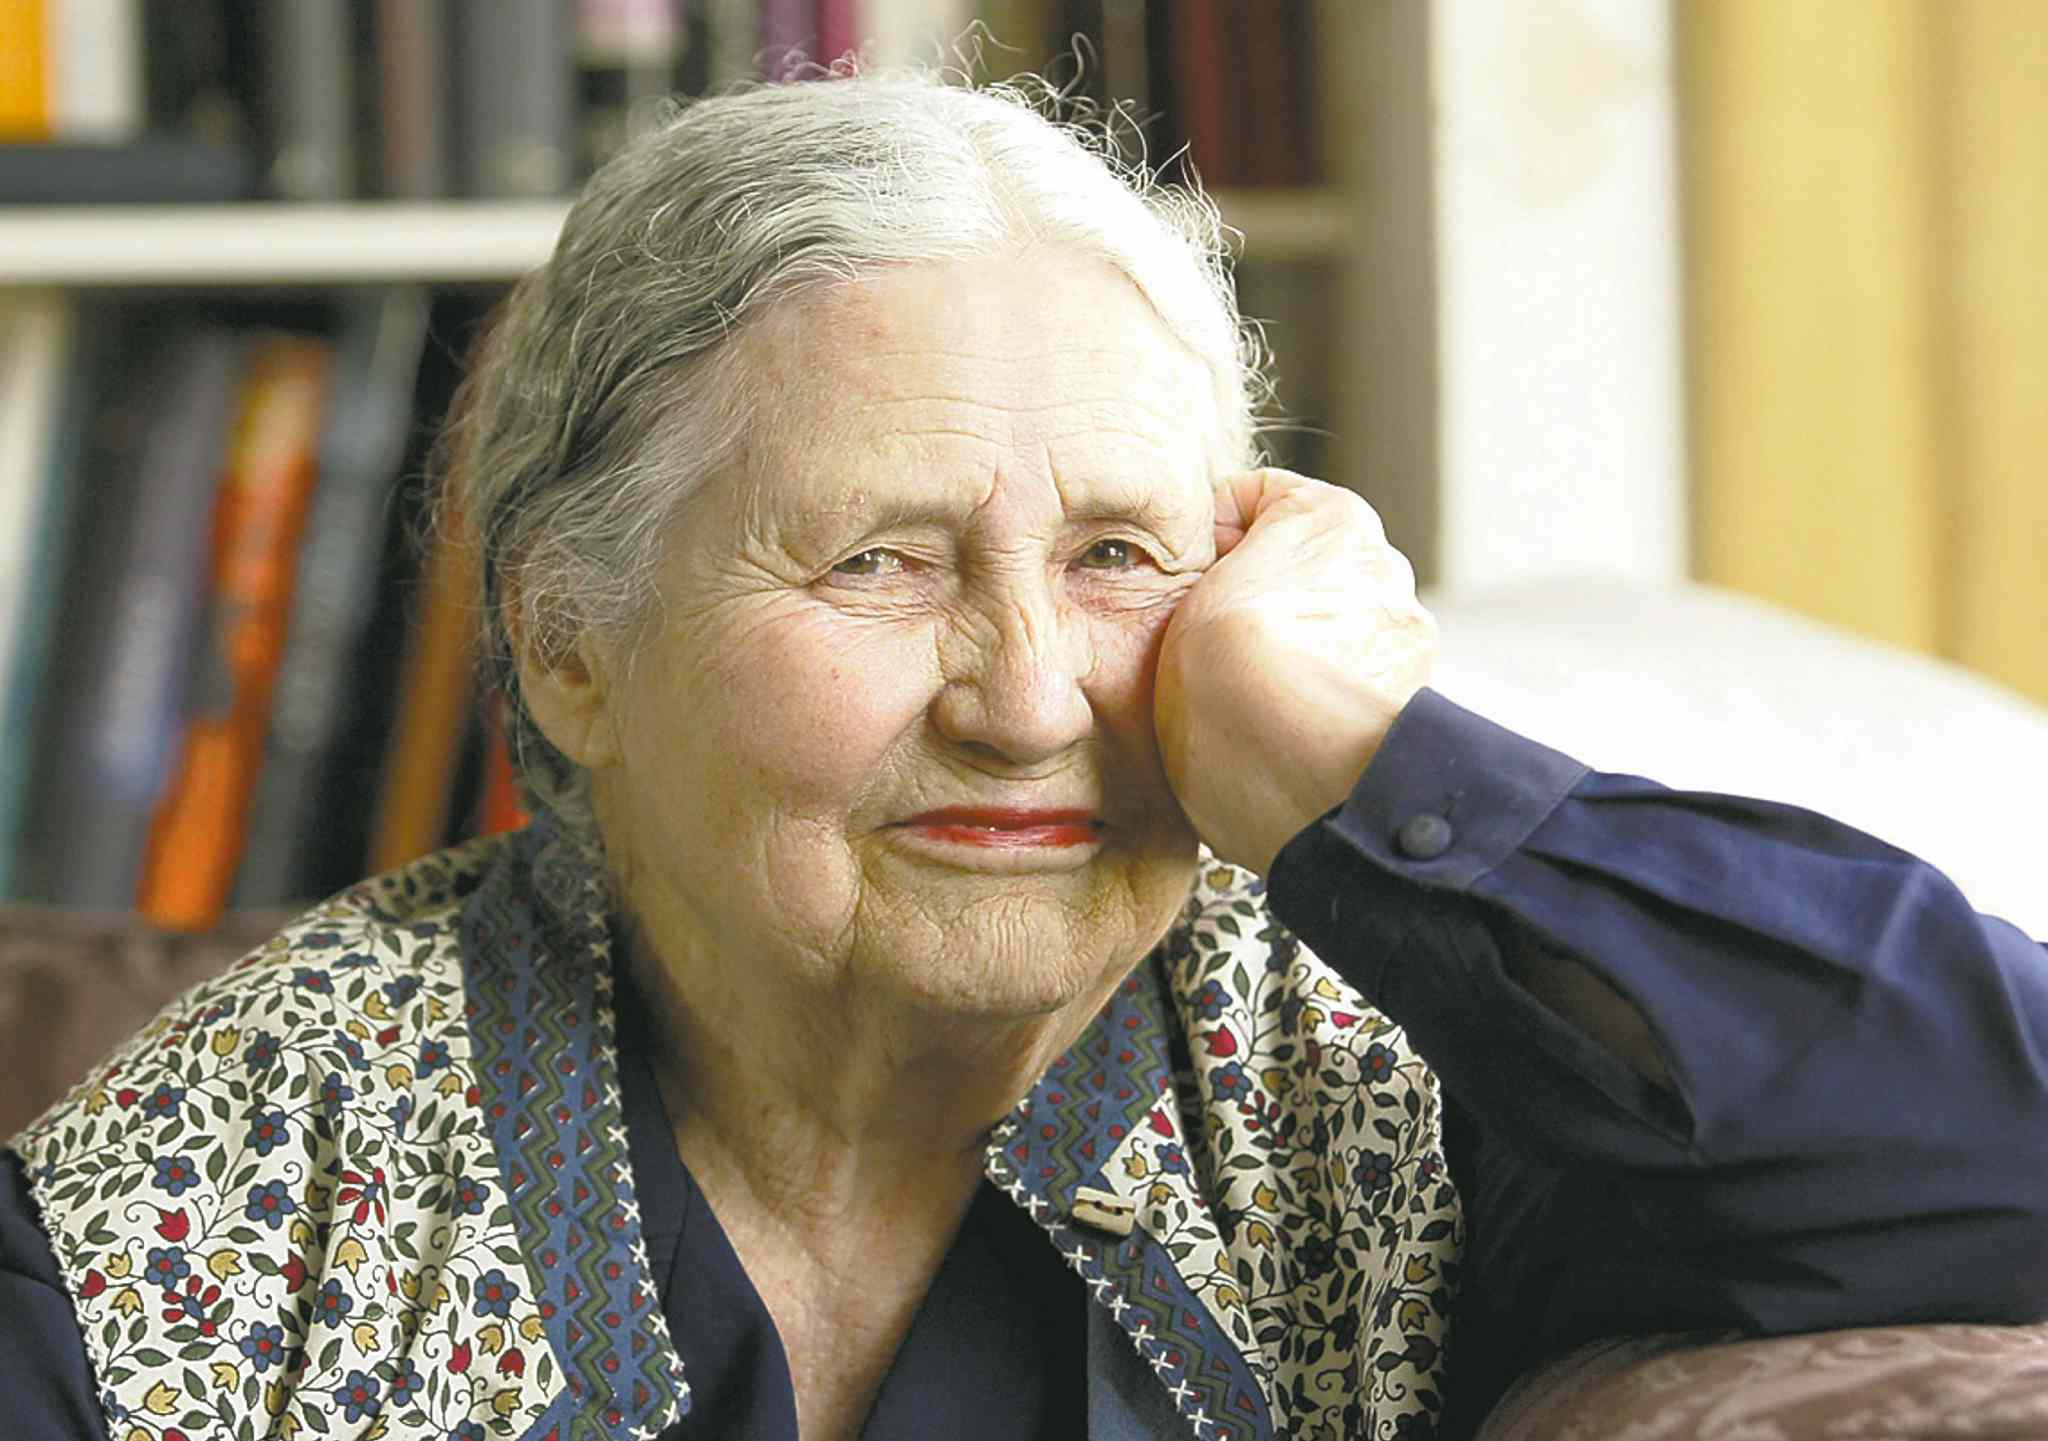 Doris Lessing wasn't entirely impressed when she won the Nobel Prize in 2007.